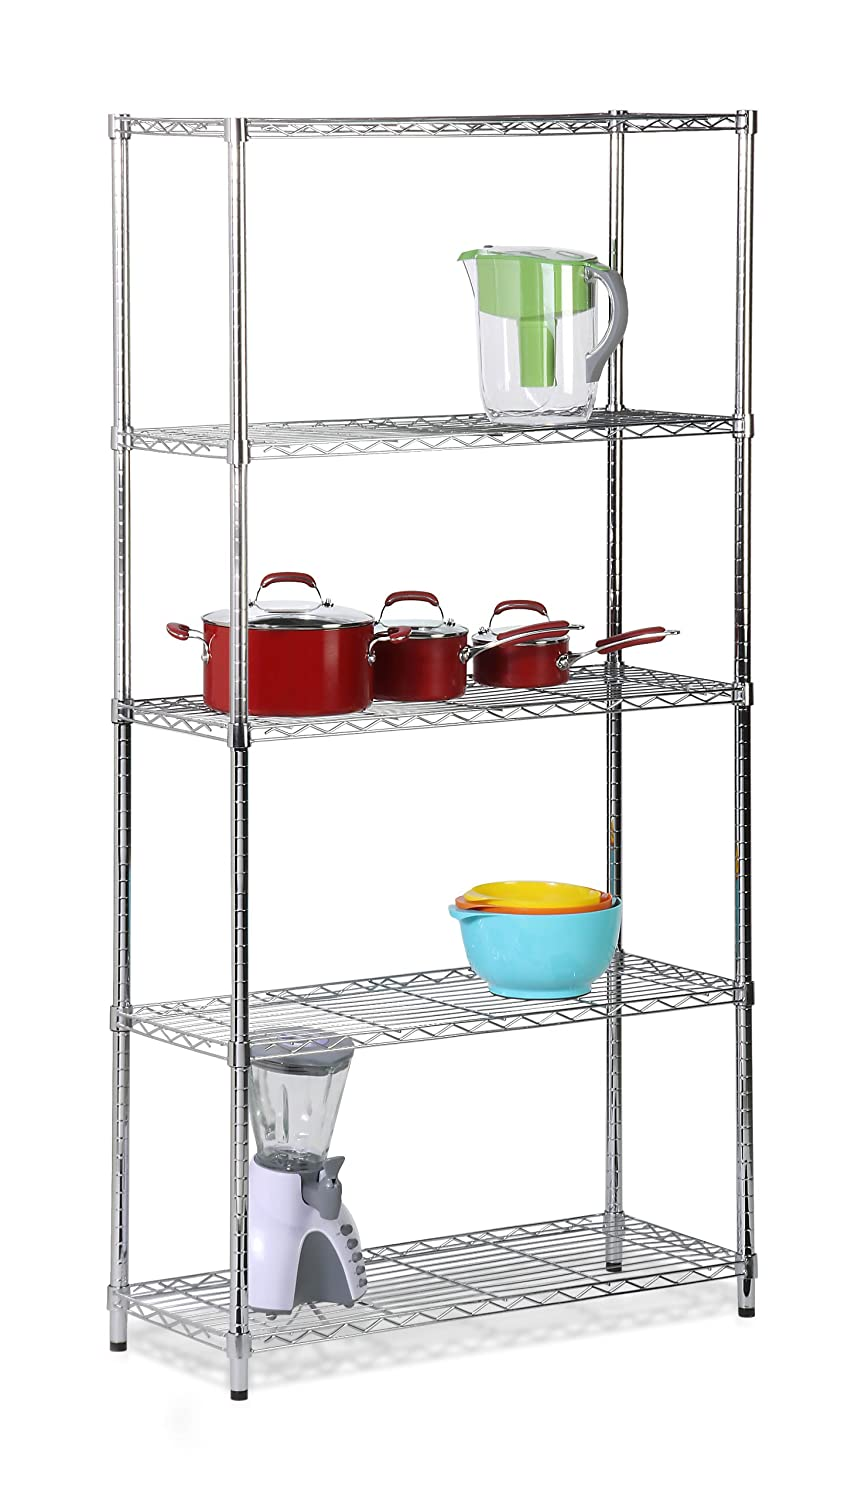 Honey-Can-Do SHF-01443 Adjustable Industrial Storage Shelving Unit, 200-Pounds Per Shelf, Chrome, 5-Tier, 36Lx14Wx72H